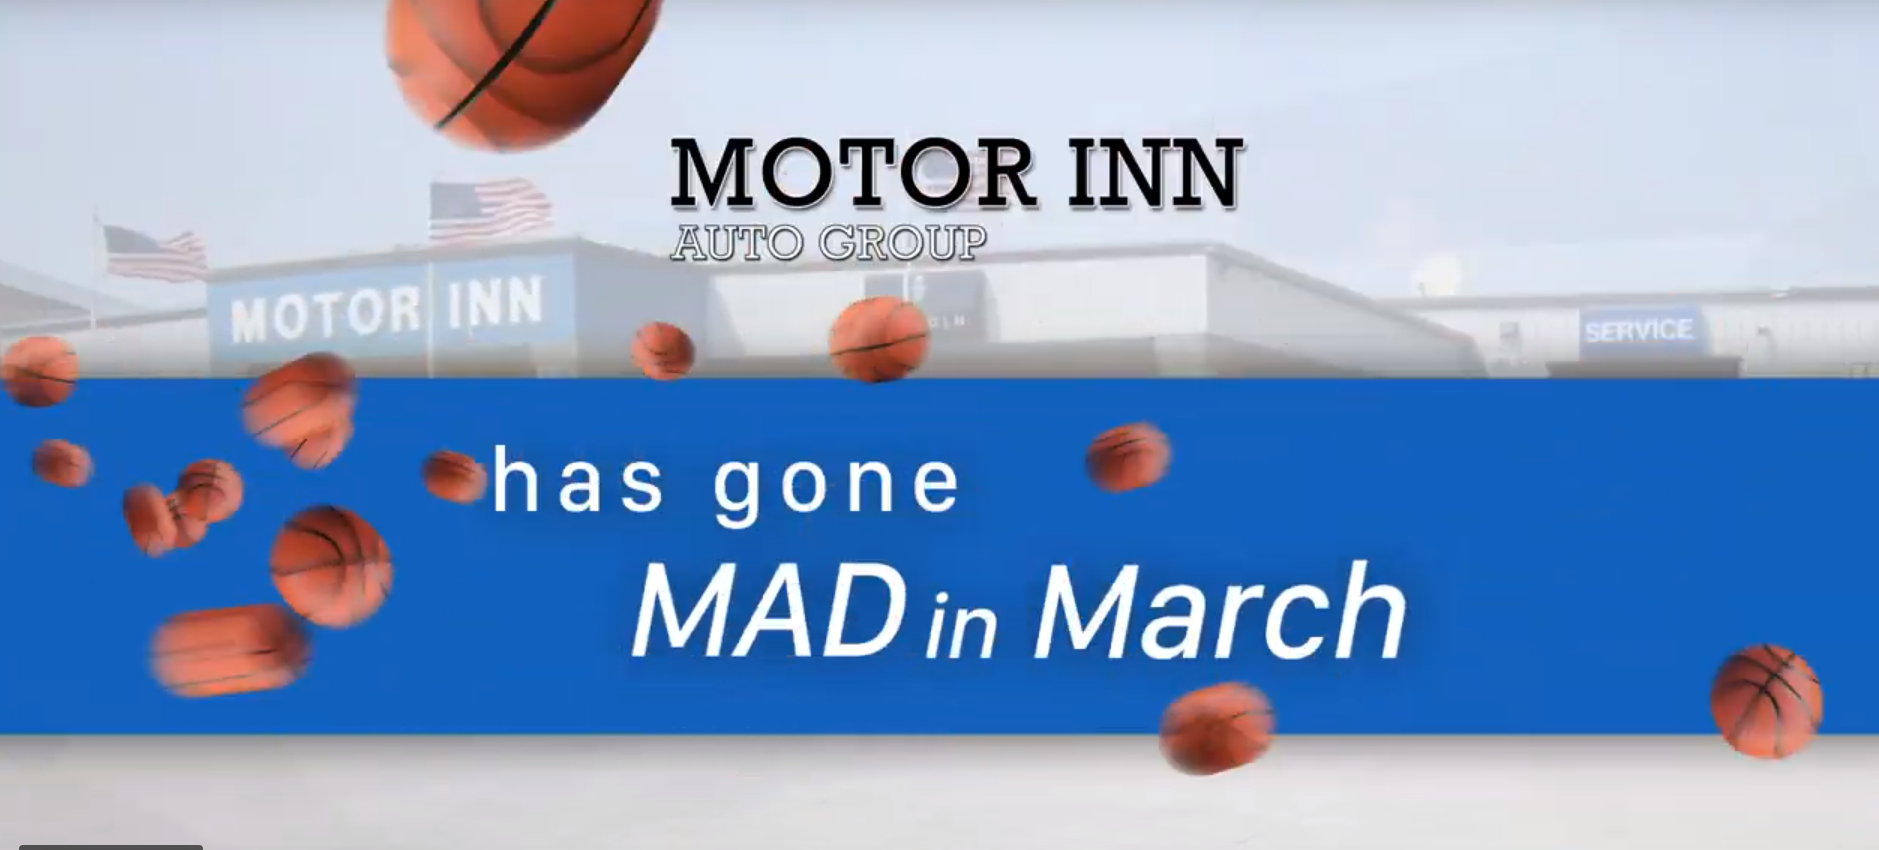 Motor Inn Auto Group -  March Madness